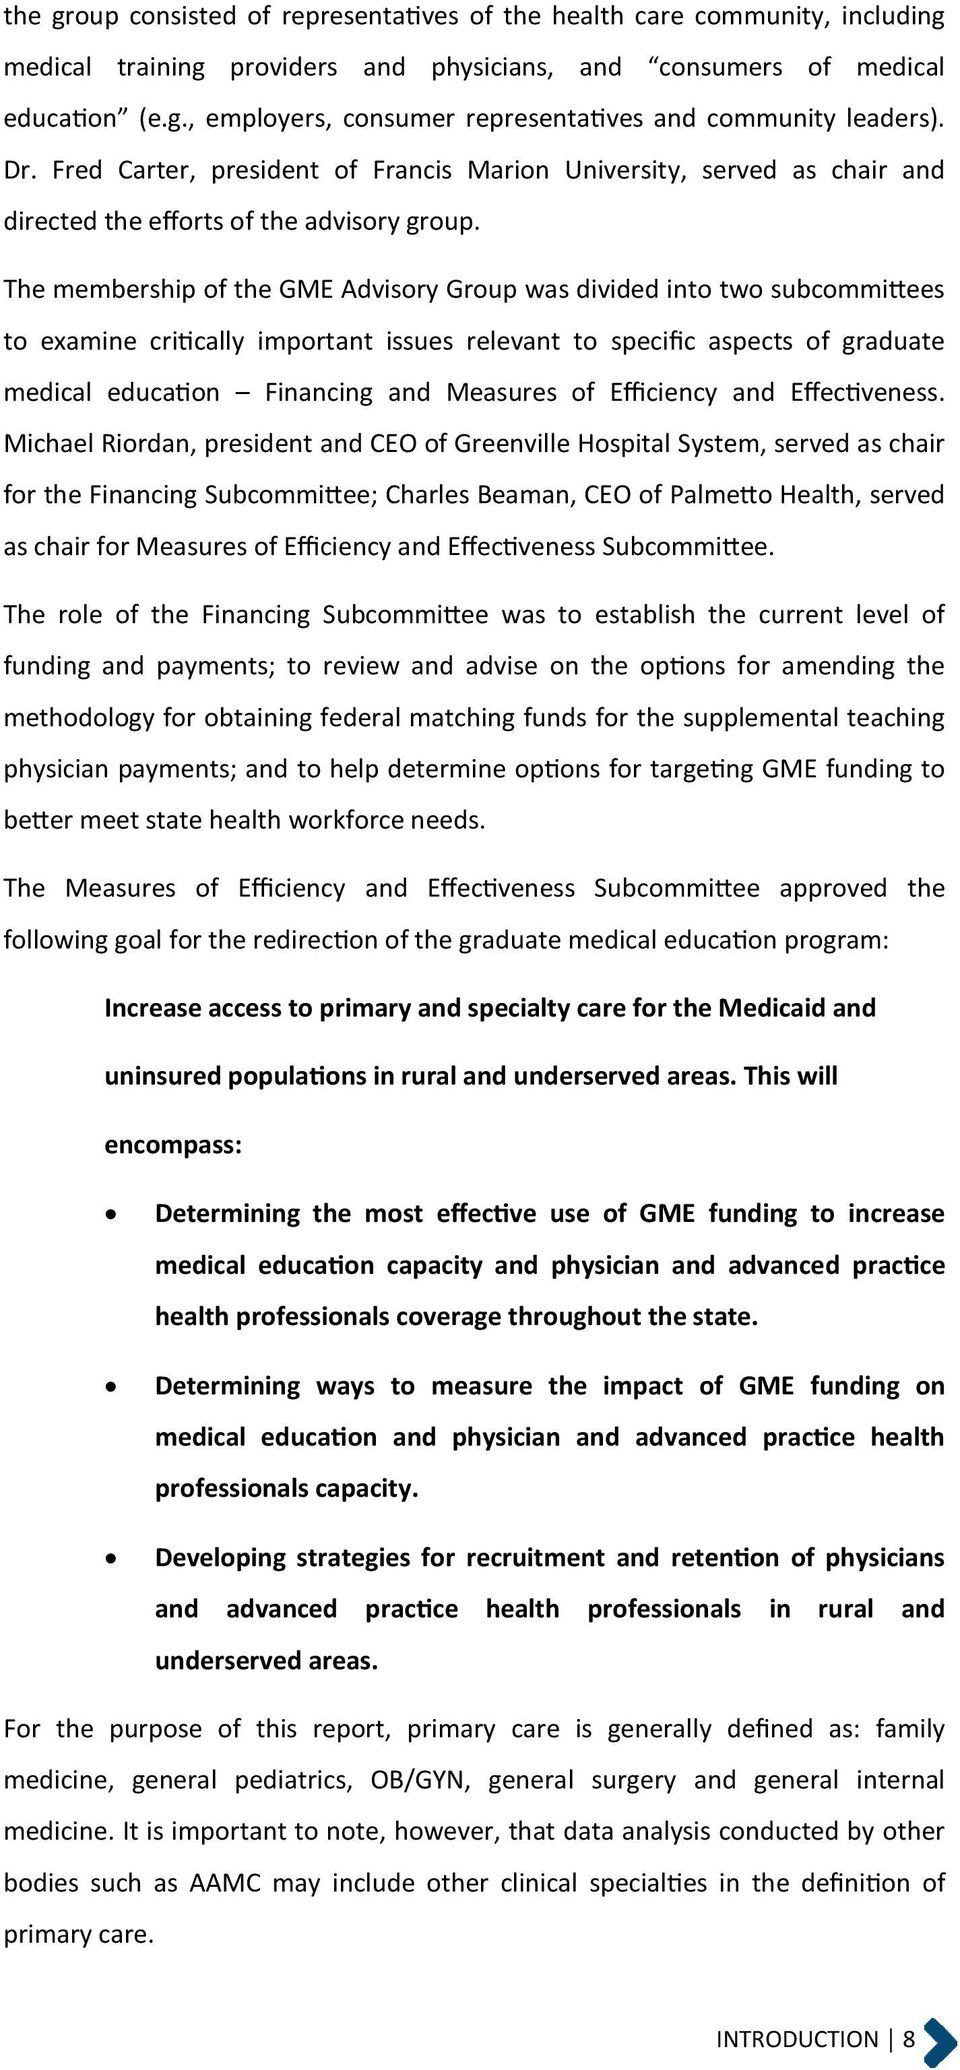 The membership of the GME Advisory Group was divided into two subcommittees to examine critically important issues relevant to specific aspects of graduate medical education Financing and Measures of